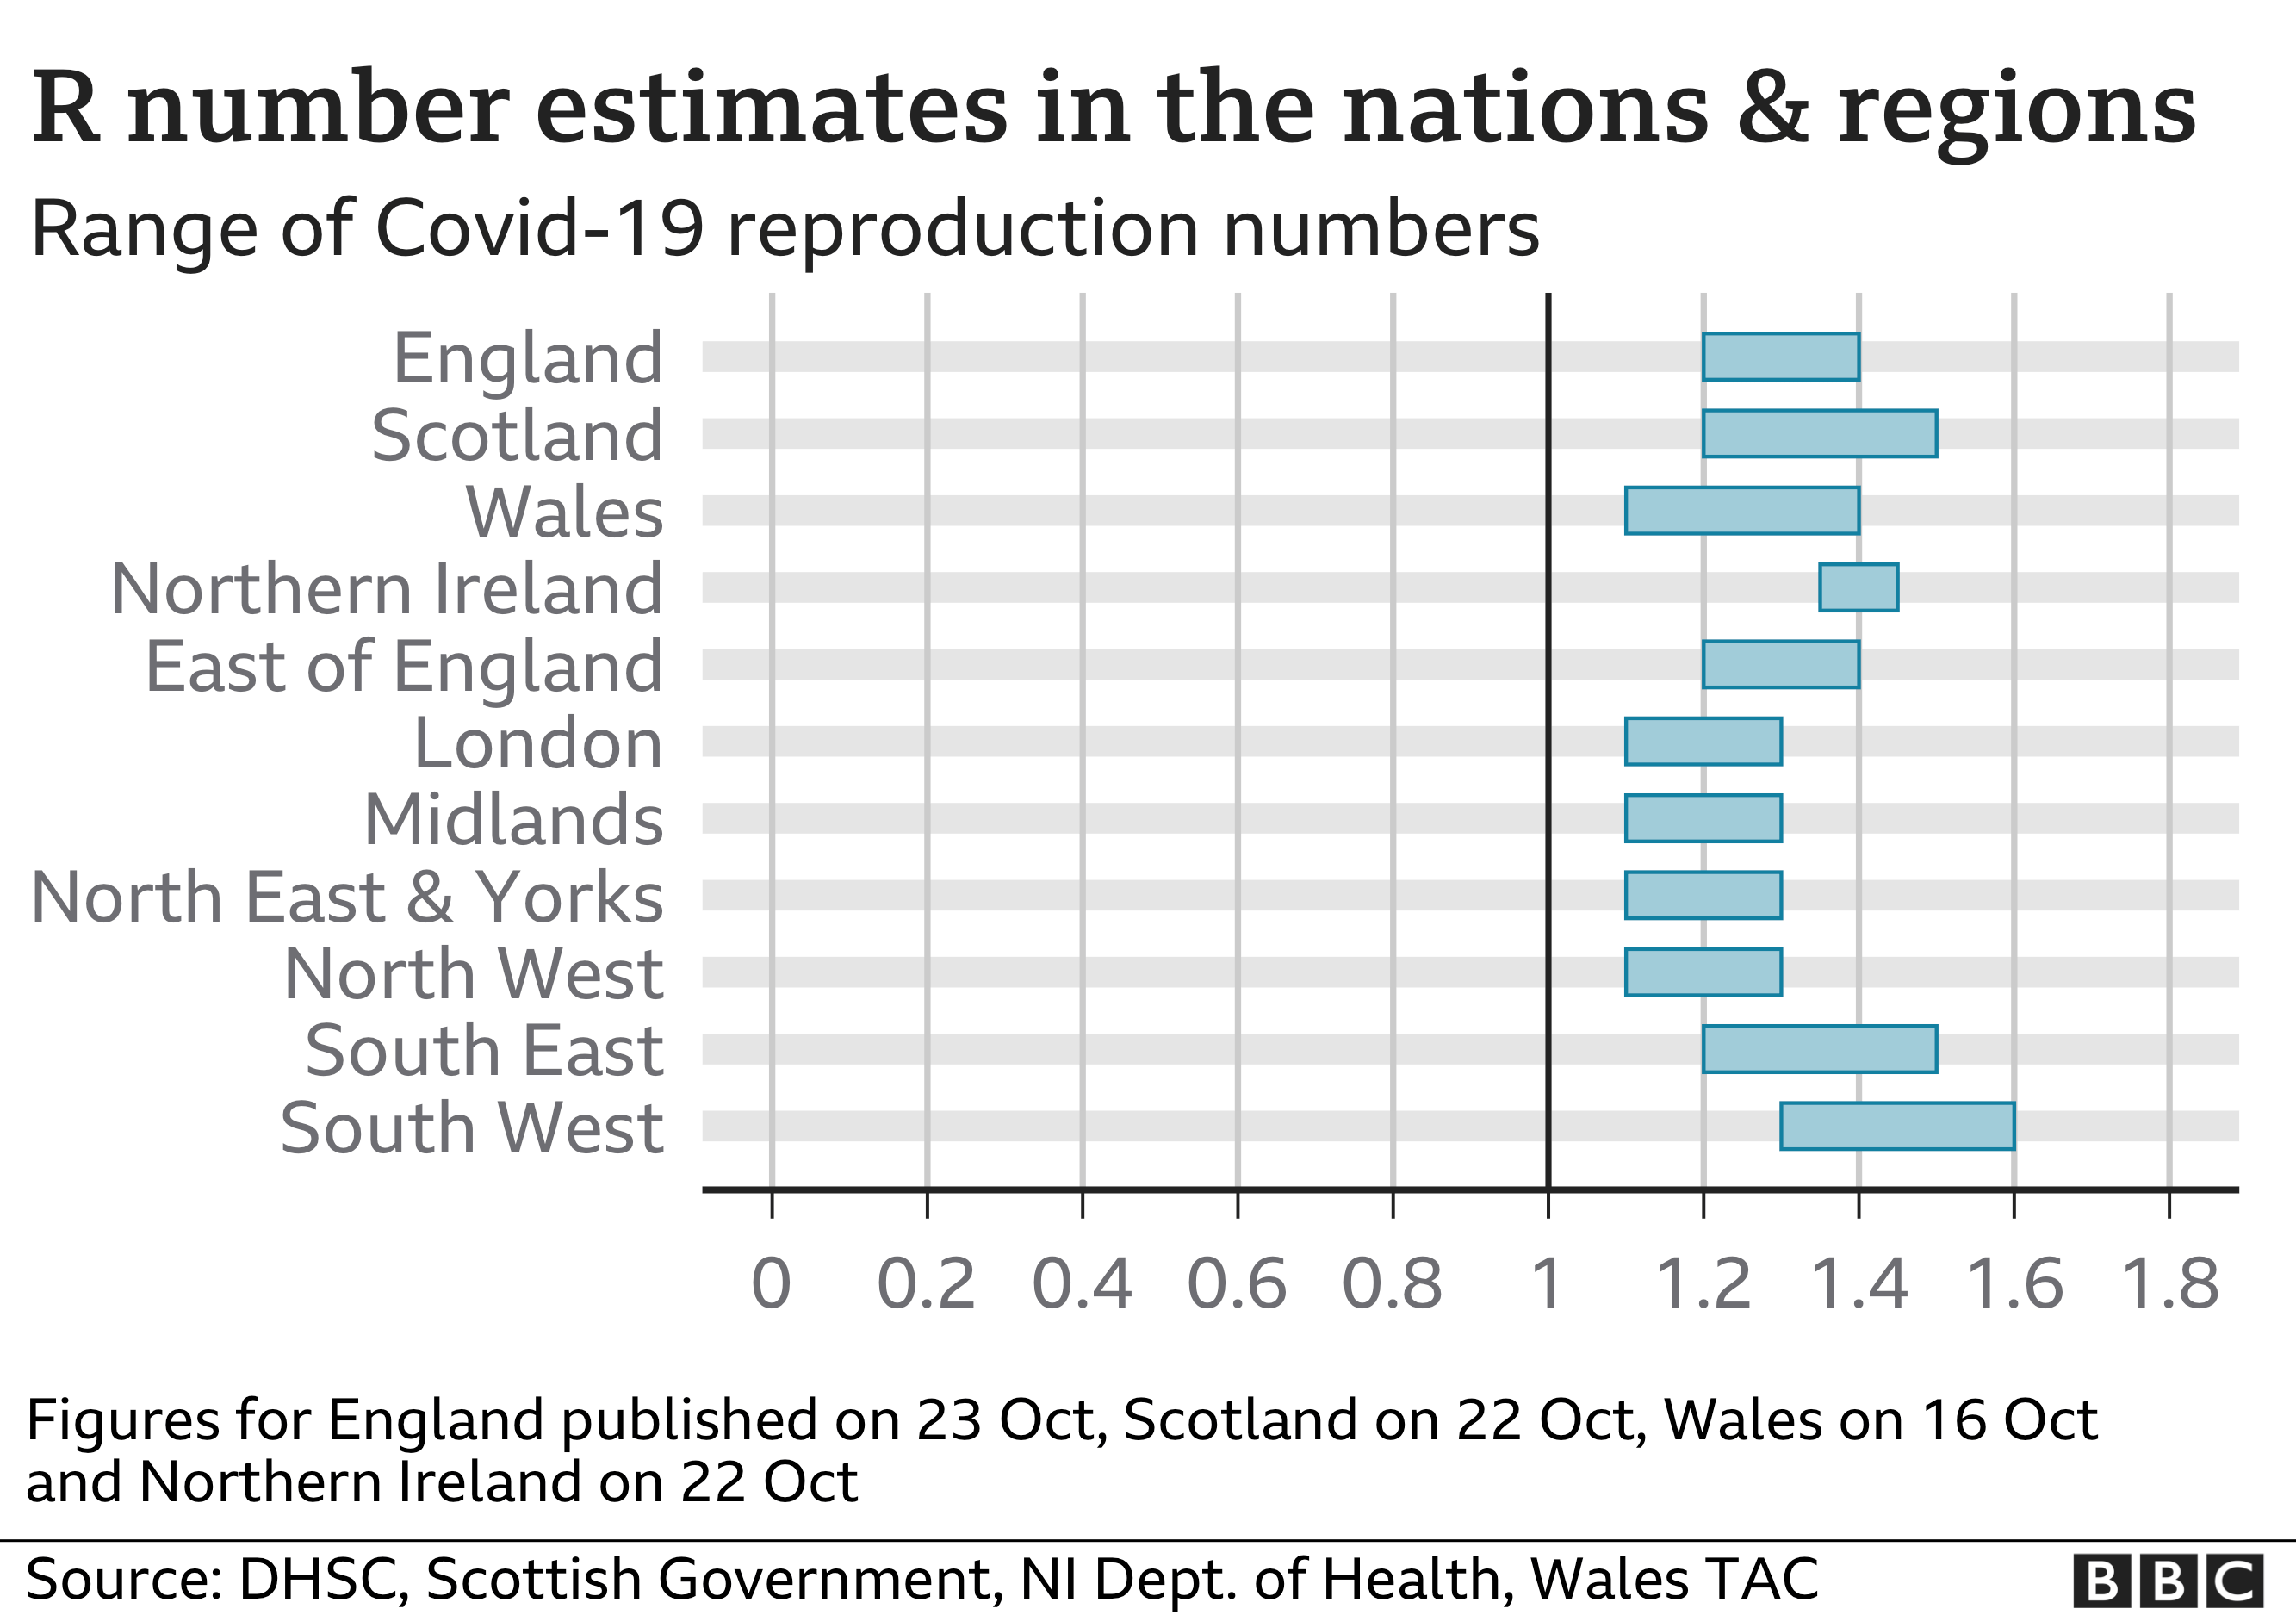 Graphic showing the estimated R number in the nations and regions of the UK. The estimate for England is 1.2-1.4, while for Scotland it is 1.2-1.5. The estimate for Wales is 1.1-1.4 and in Northern Ireland it is 1.4. Updated 23 Oct.